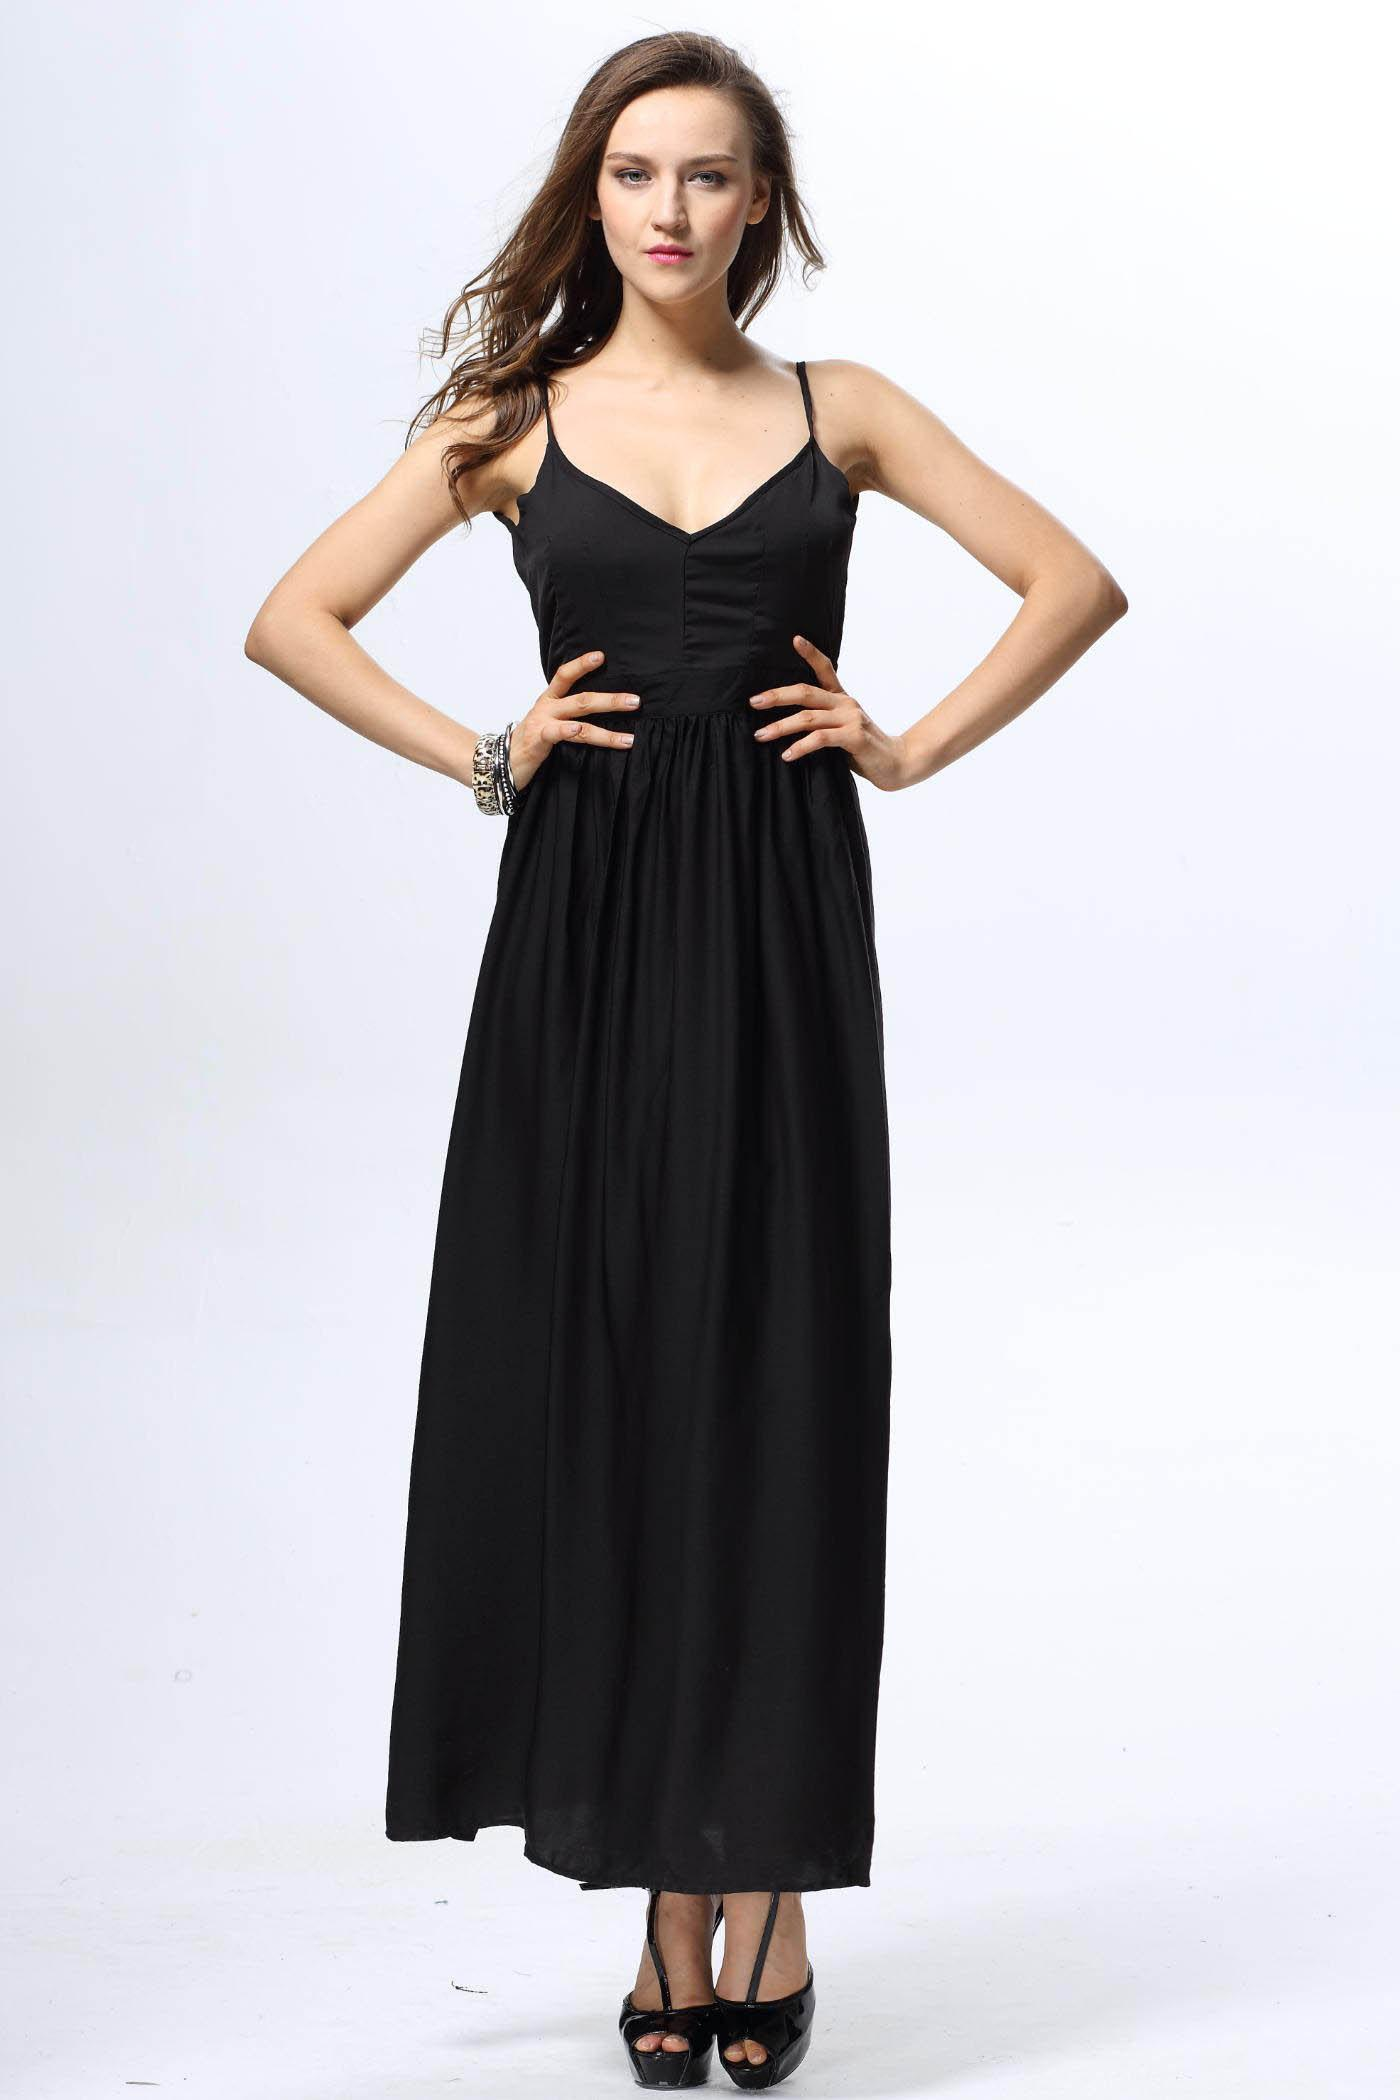 Solid Color Backless Spaghetti Straps Plunging Neck Elegant Style Women's Dress - BLACK XL